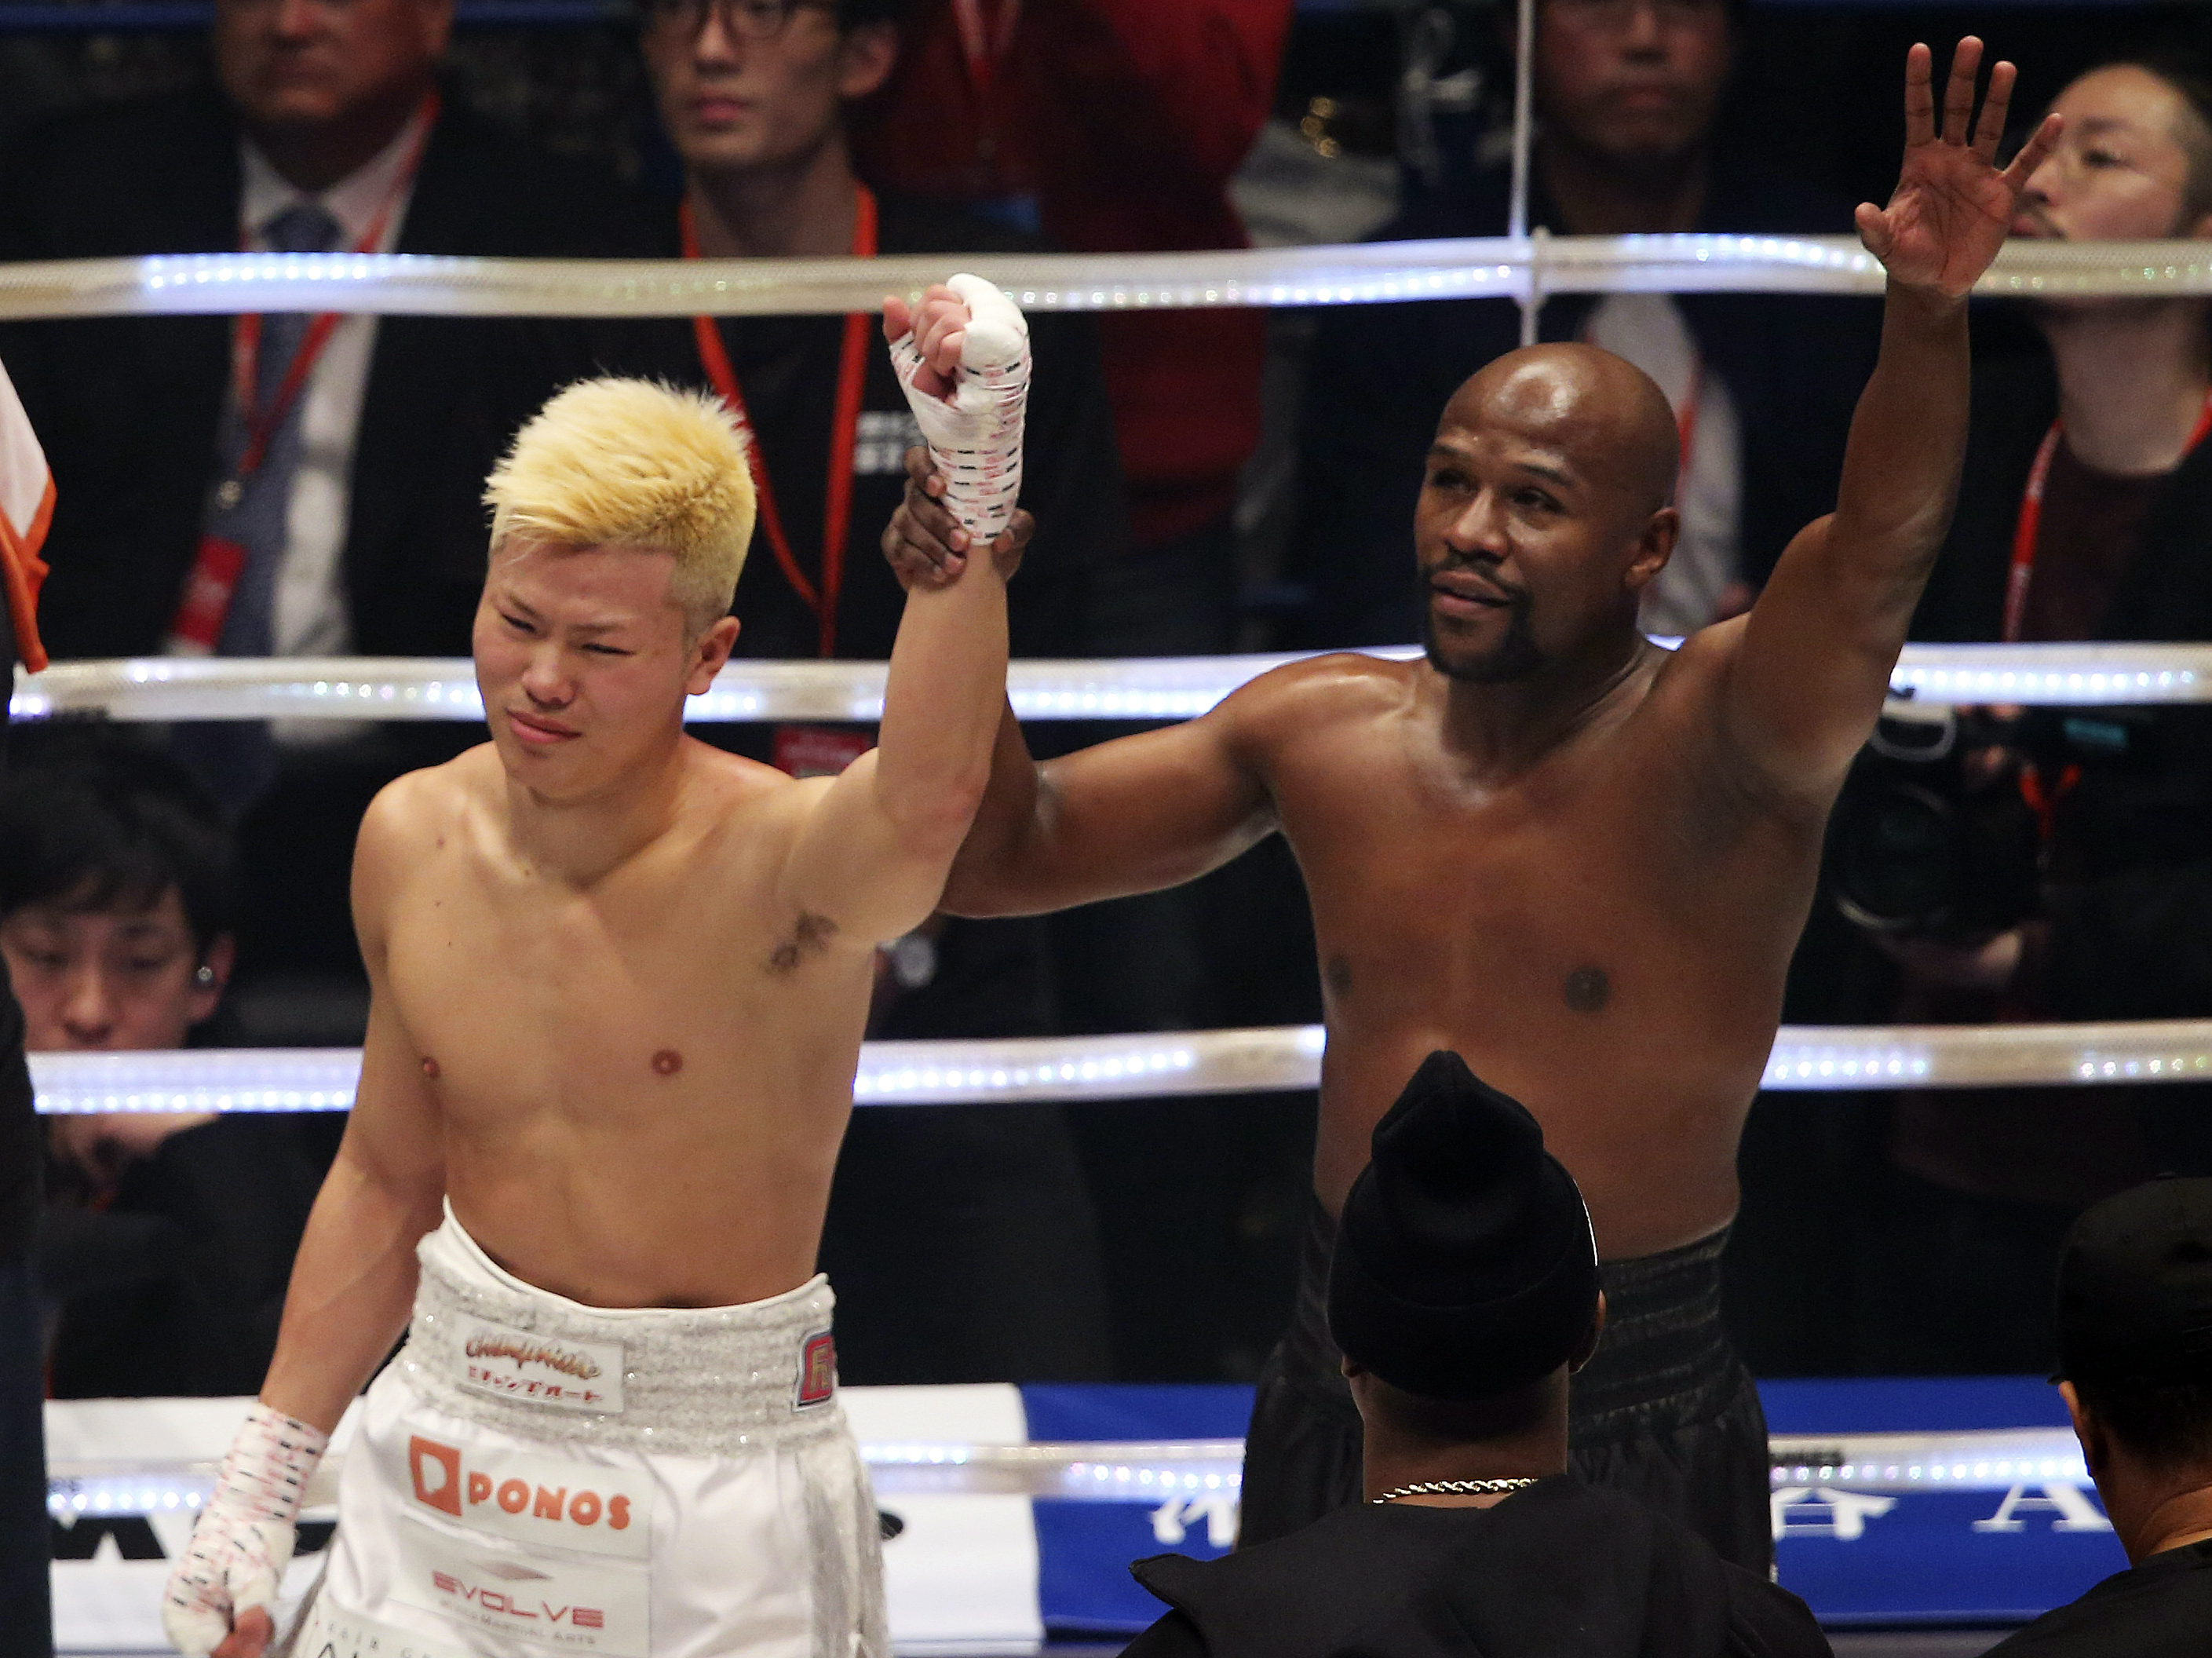 Conor McGregor calls for MMA expo fight with Tenshin Nasukawa who accepts